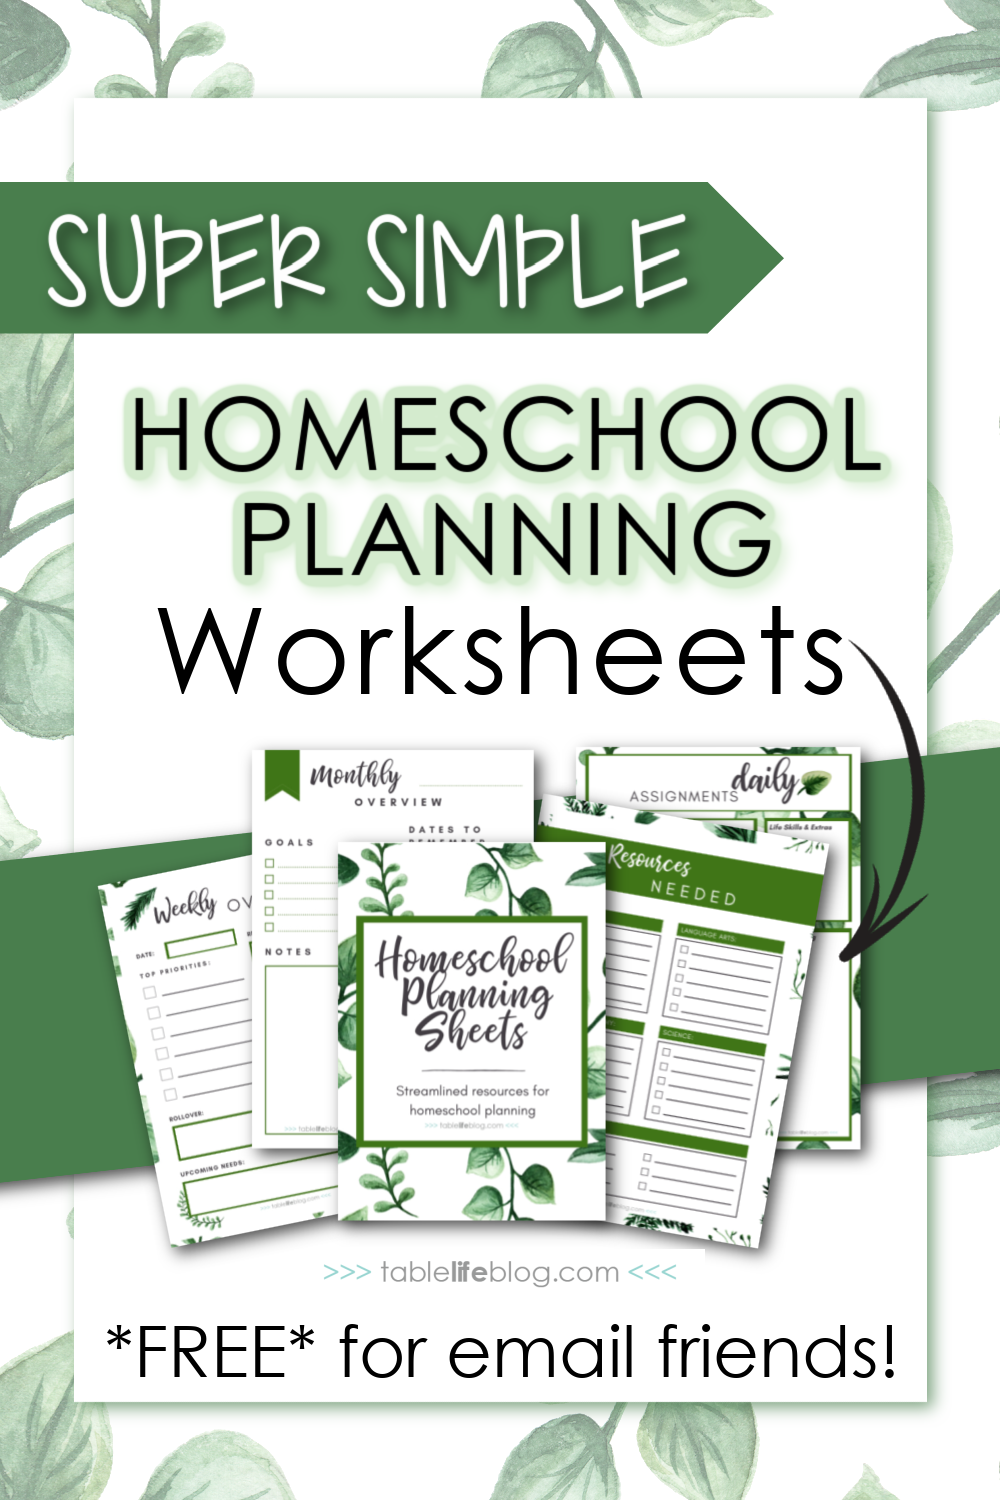 Super Simple Homeschool Planning Worksheets: Free Downloads for Relaxed Homeschooling: